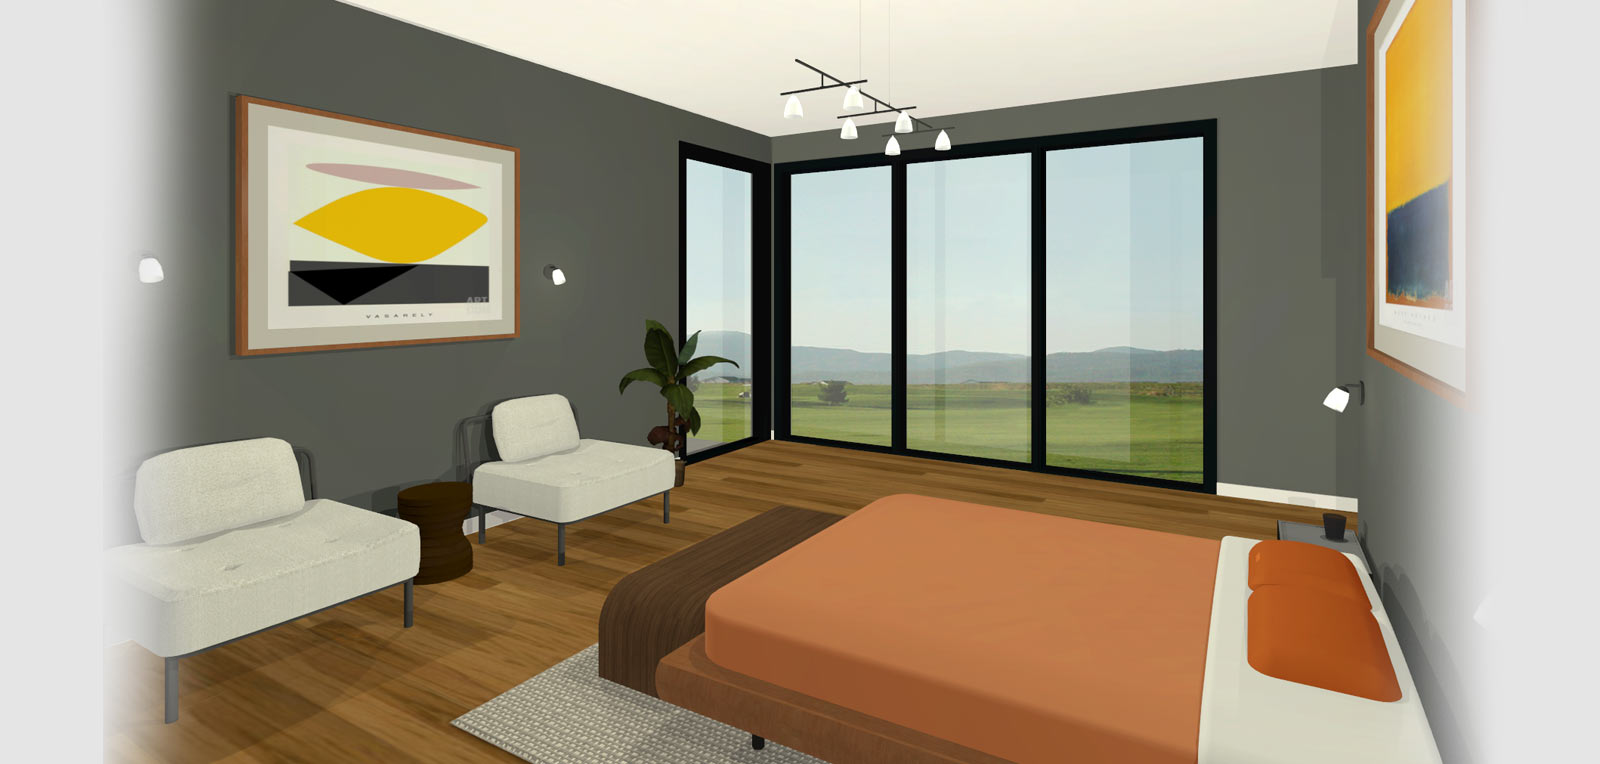 Home Designer Interior Design Software Home Remodeling Design Software